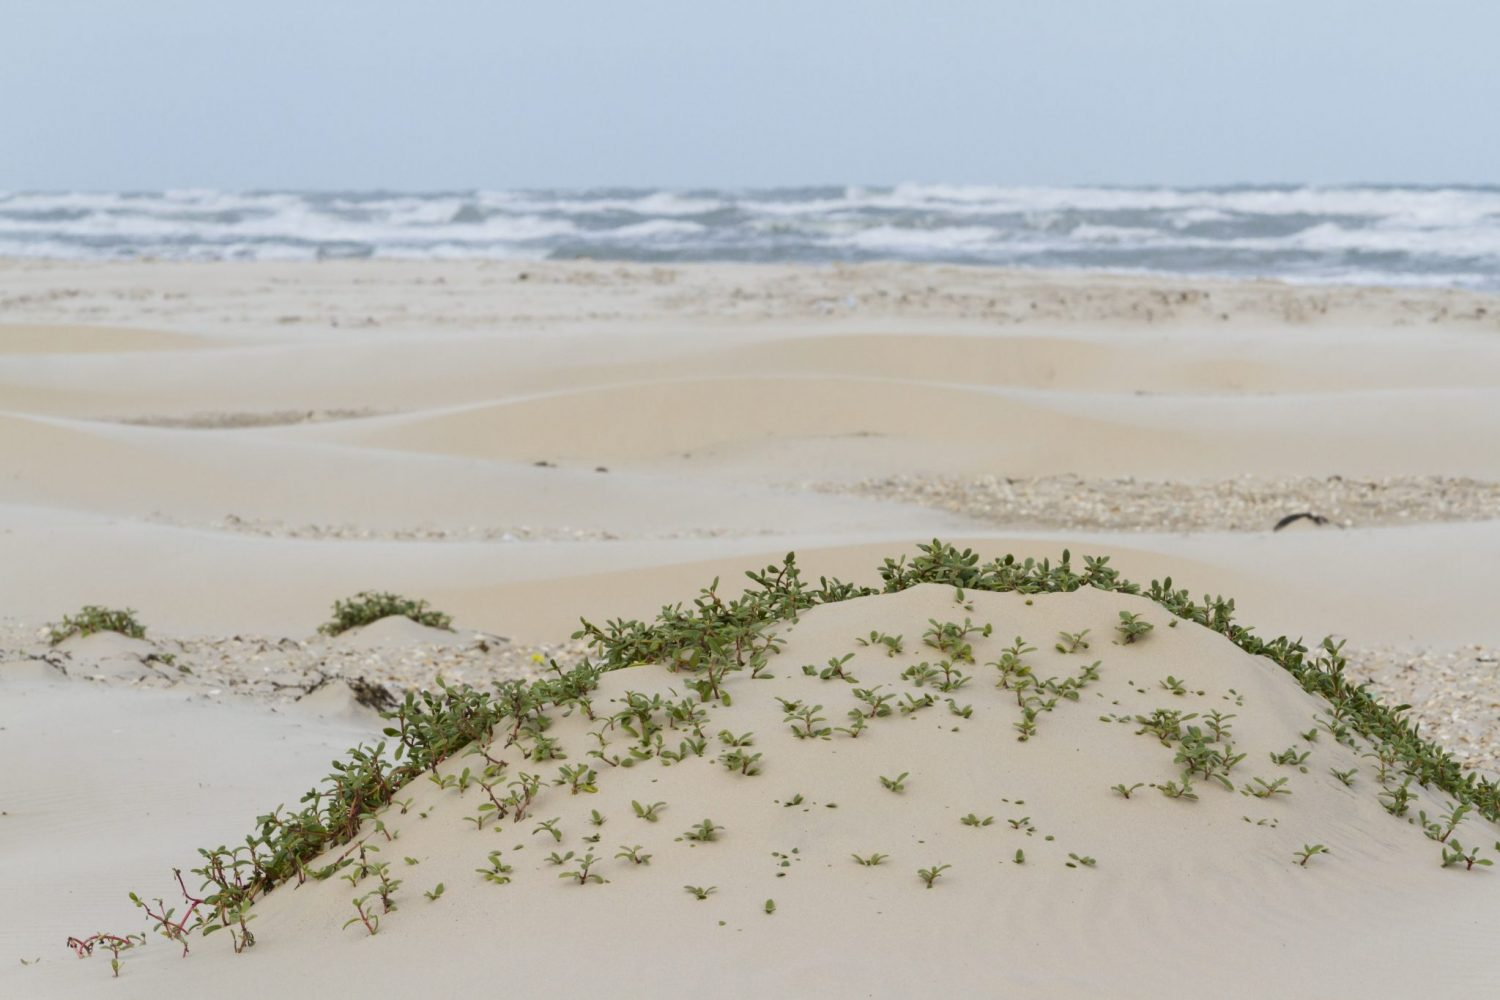 Coastal dunes of South Padre Island TX.